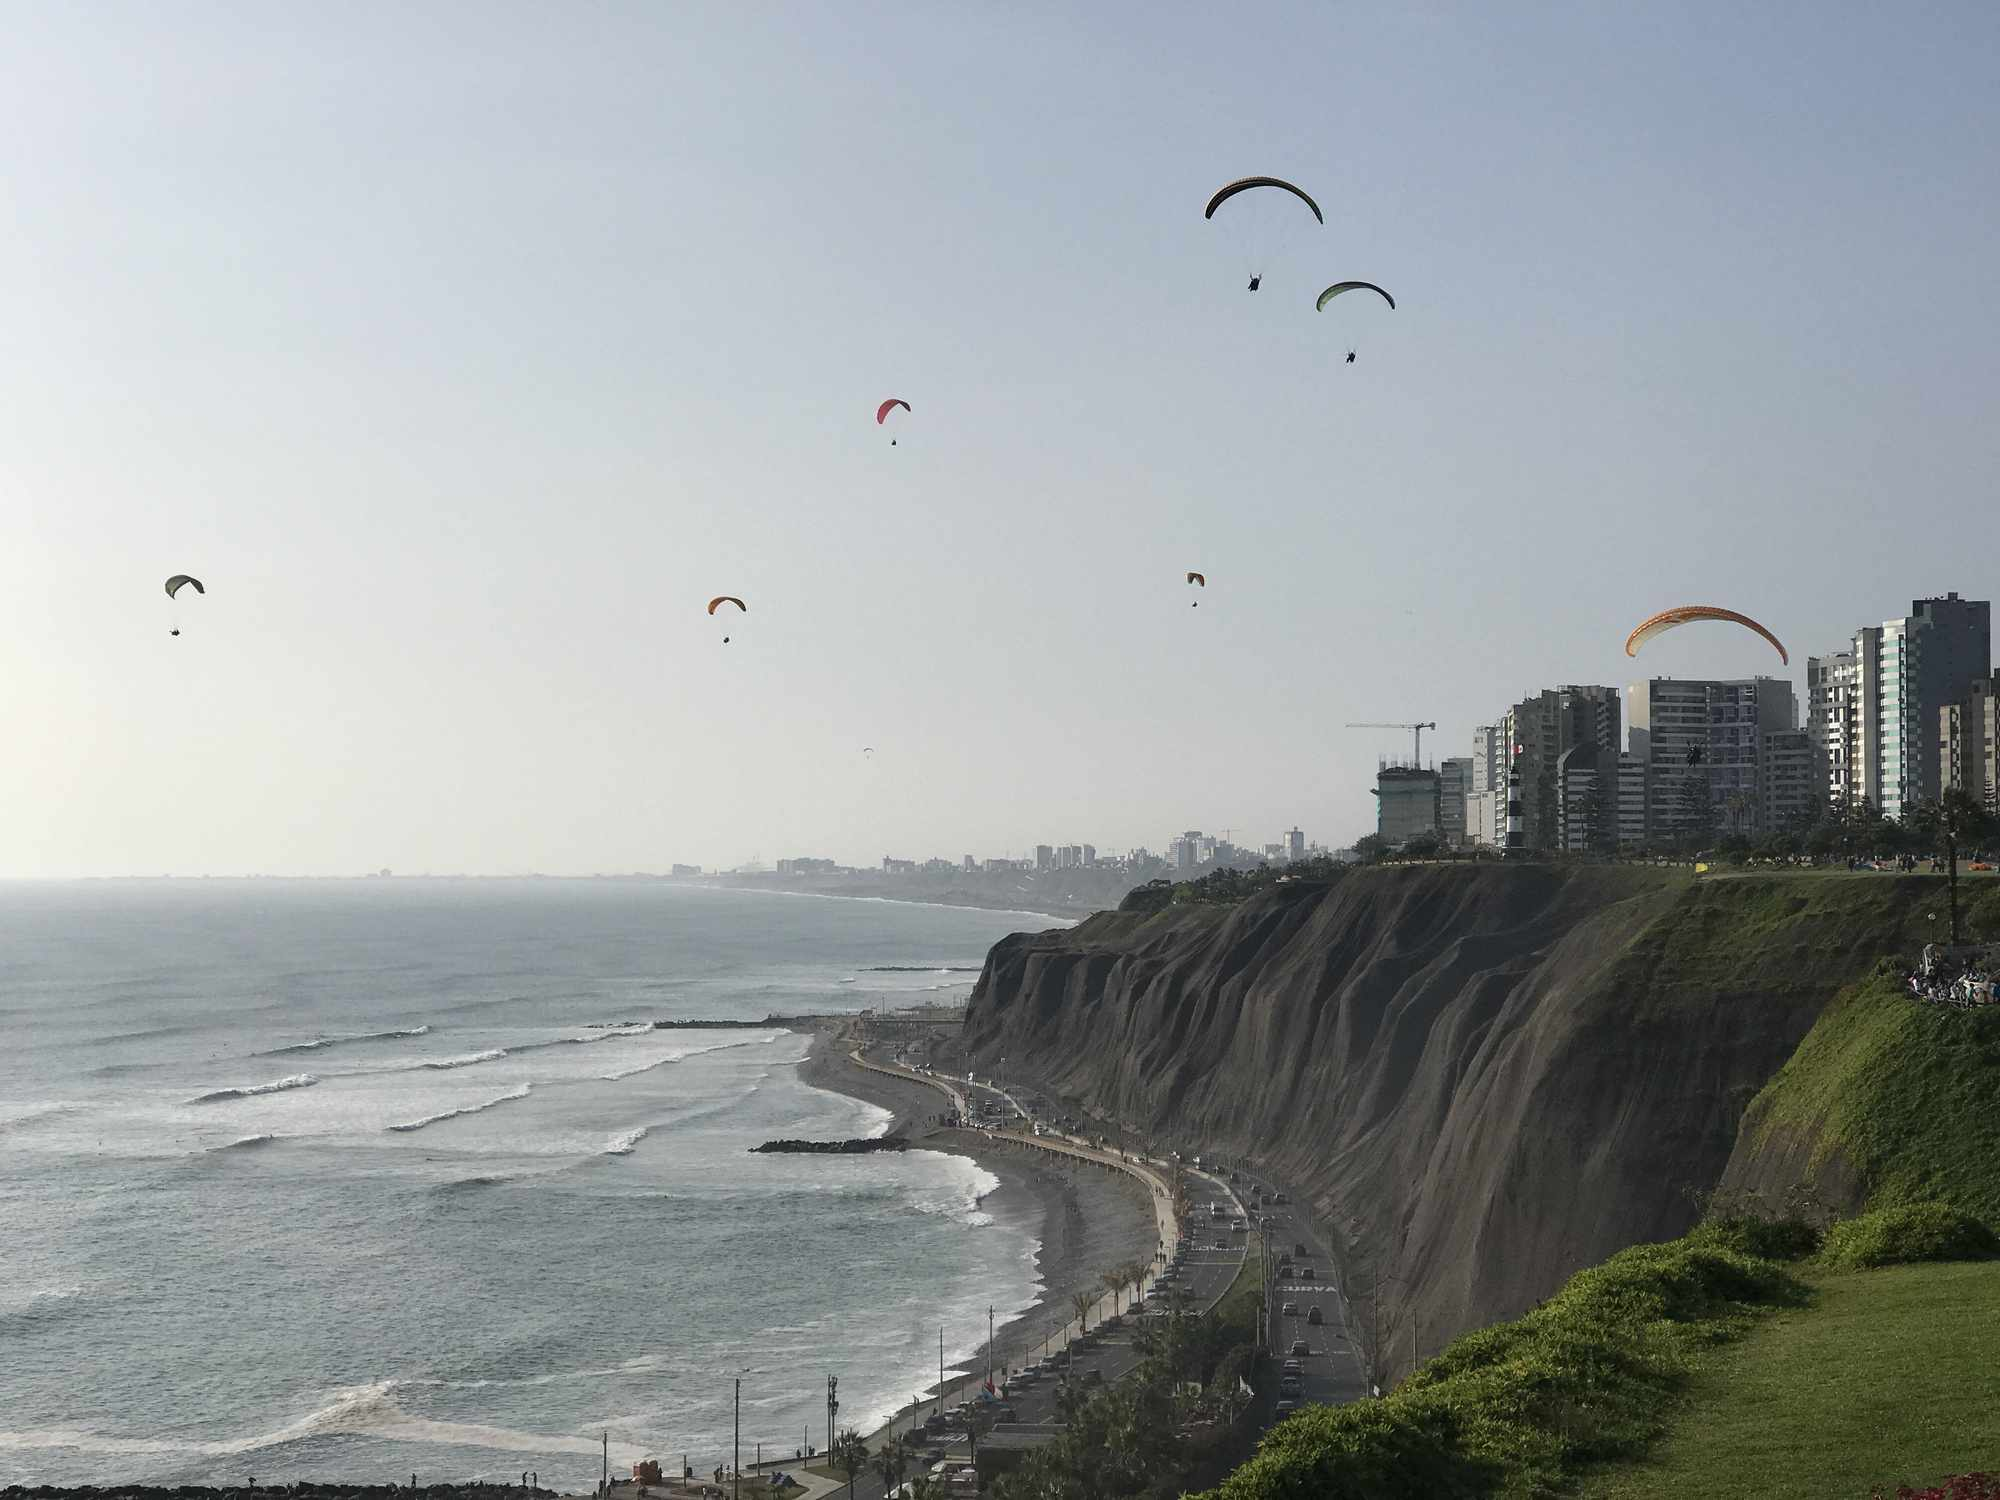 cliffs with sea below and paragliders in the sky